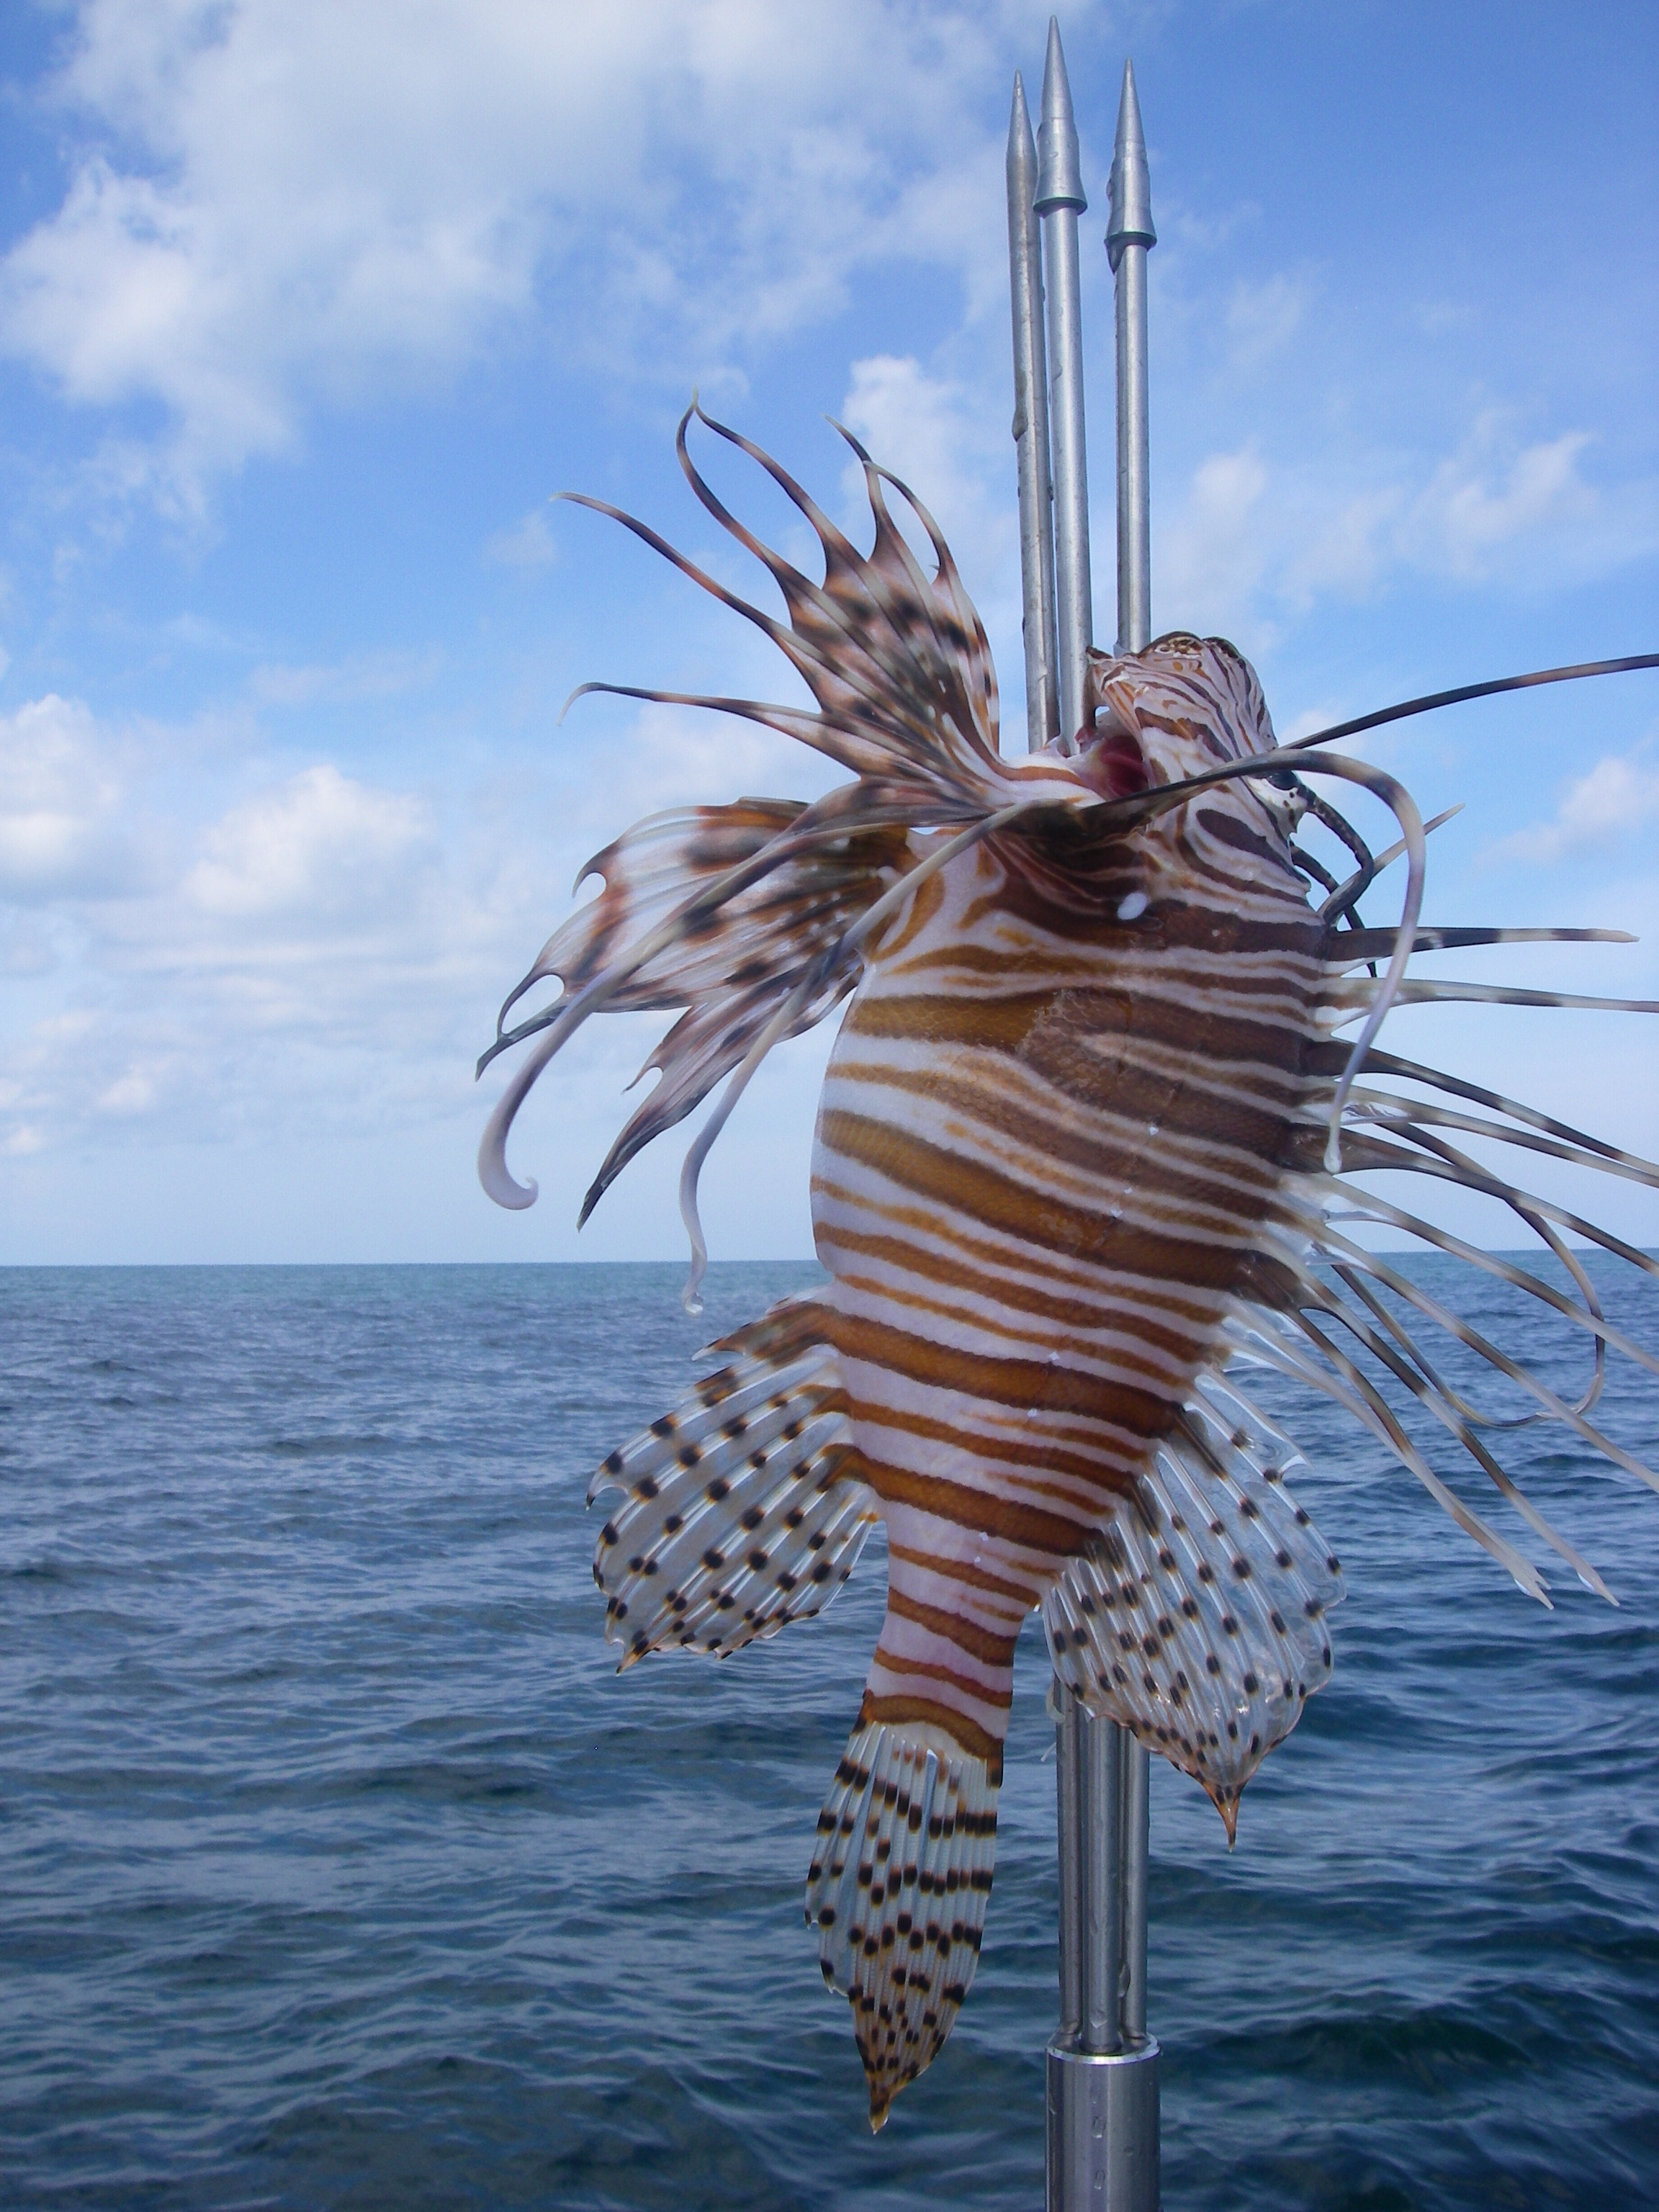 Tasty dinner treat taken with a Bandito Lionfish Polespear.